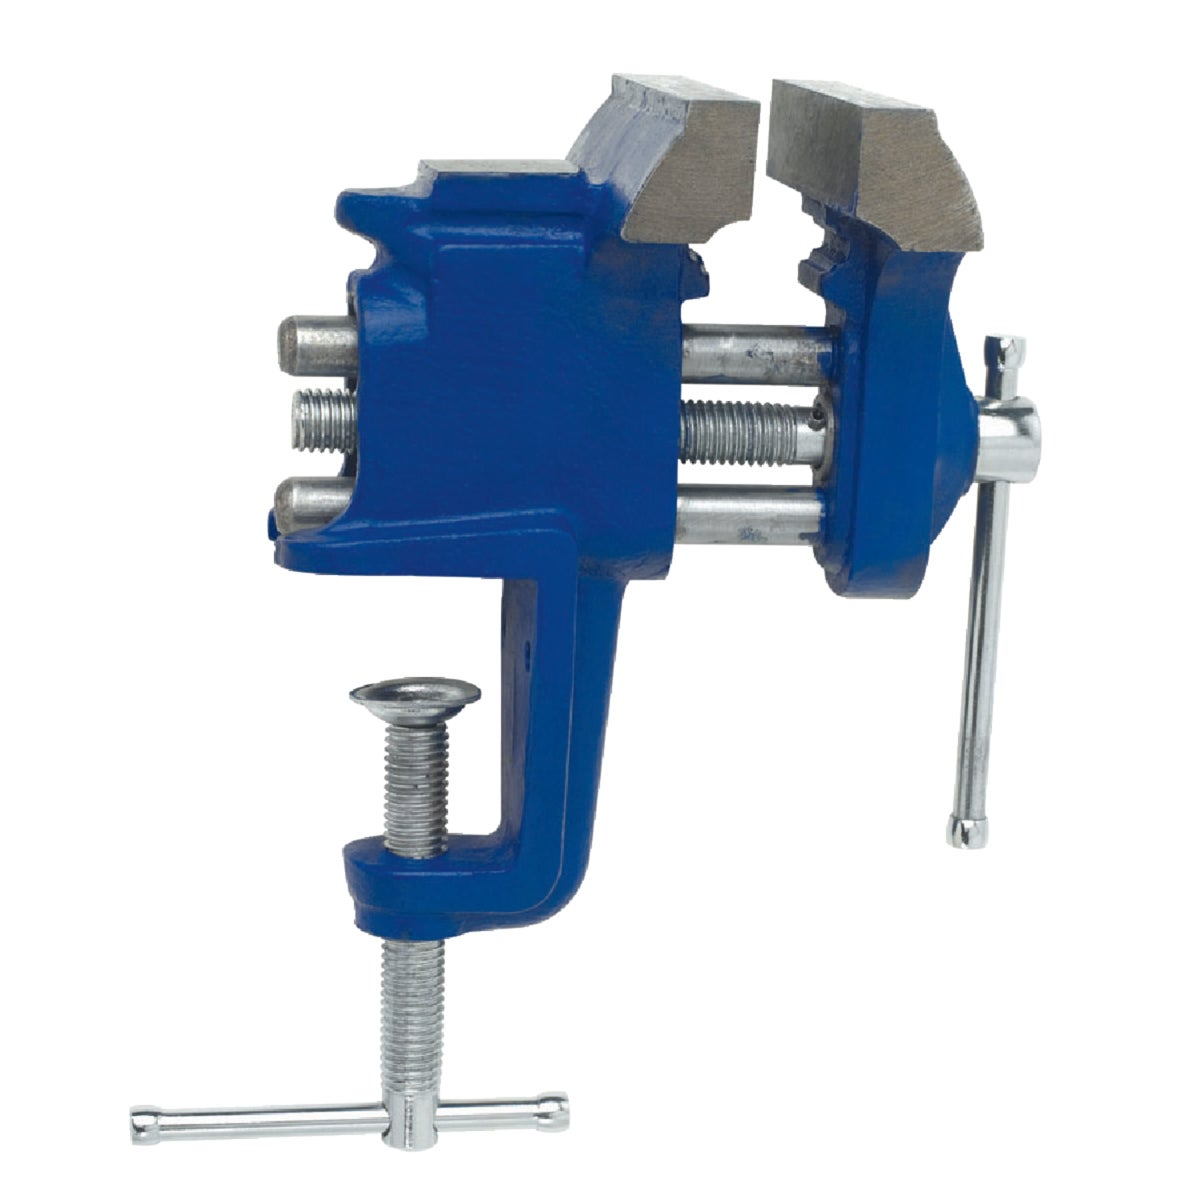 "3"" CLAMP-ON VISE"